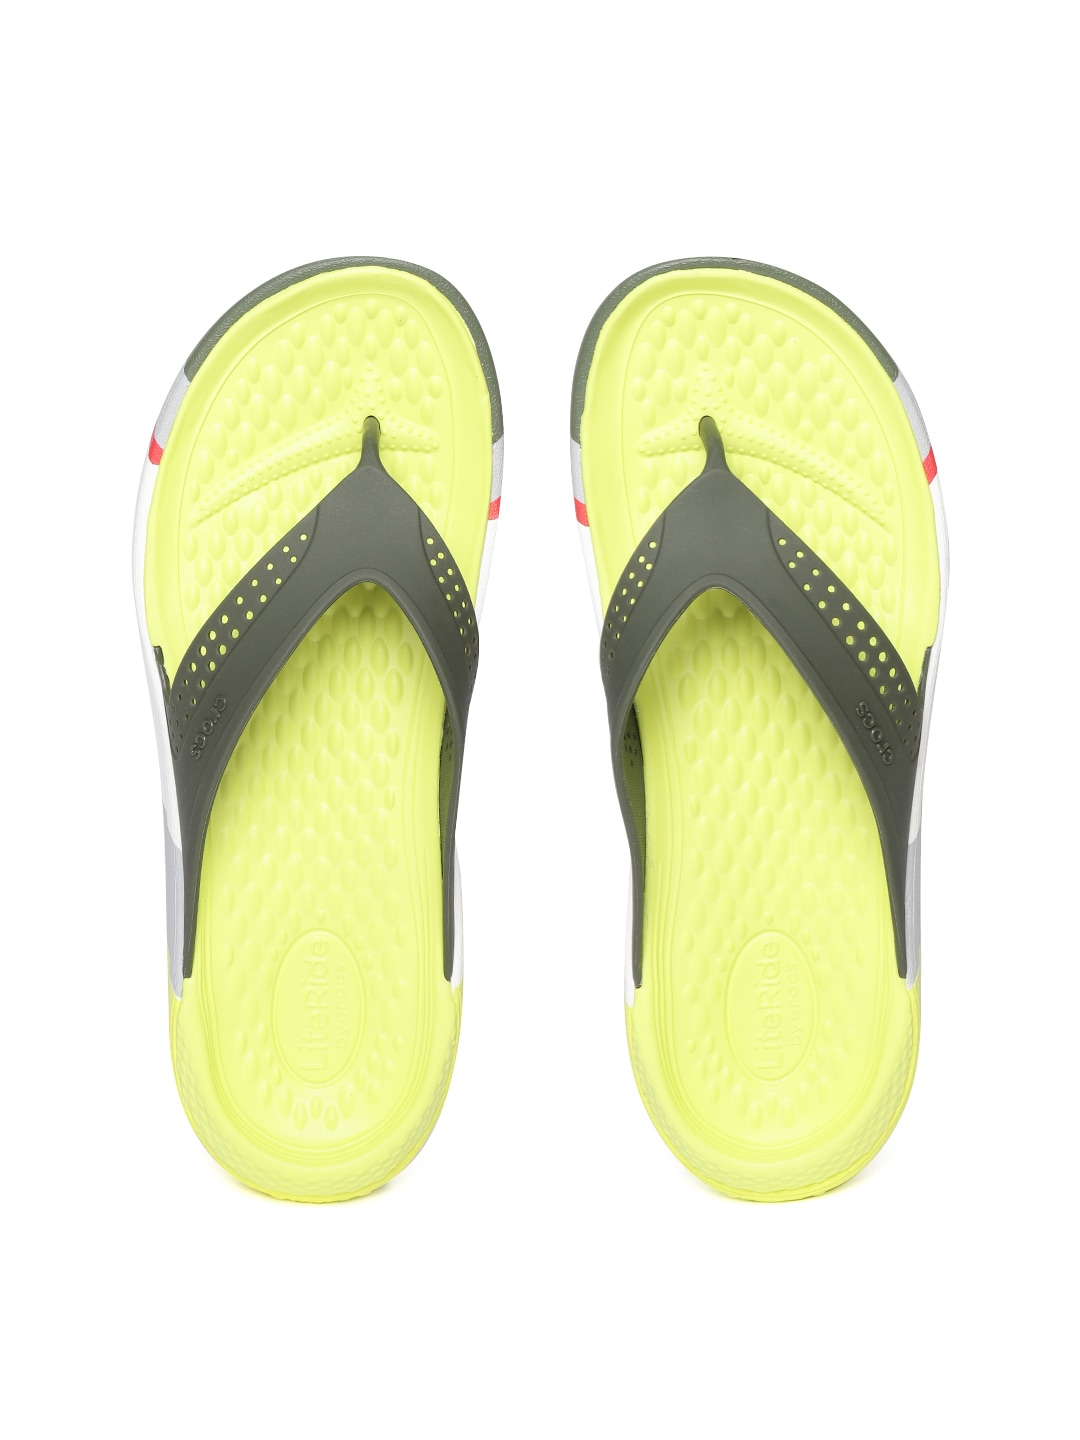 d8140851ca0b Crocs Men Footwear - Buy Crocs Shoes and Sandals For Men Online in India